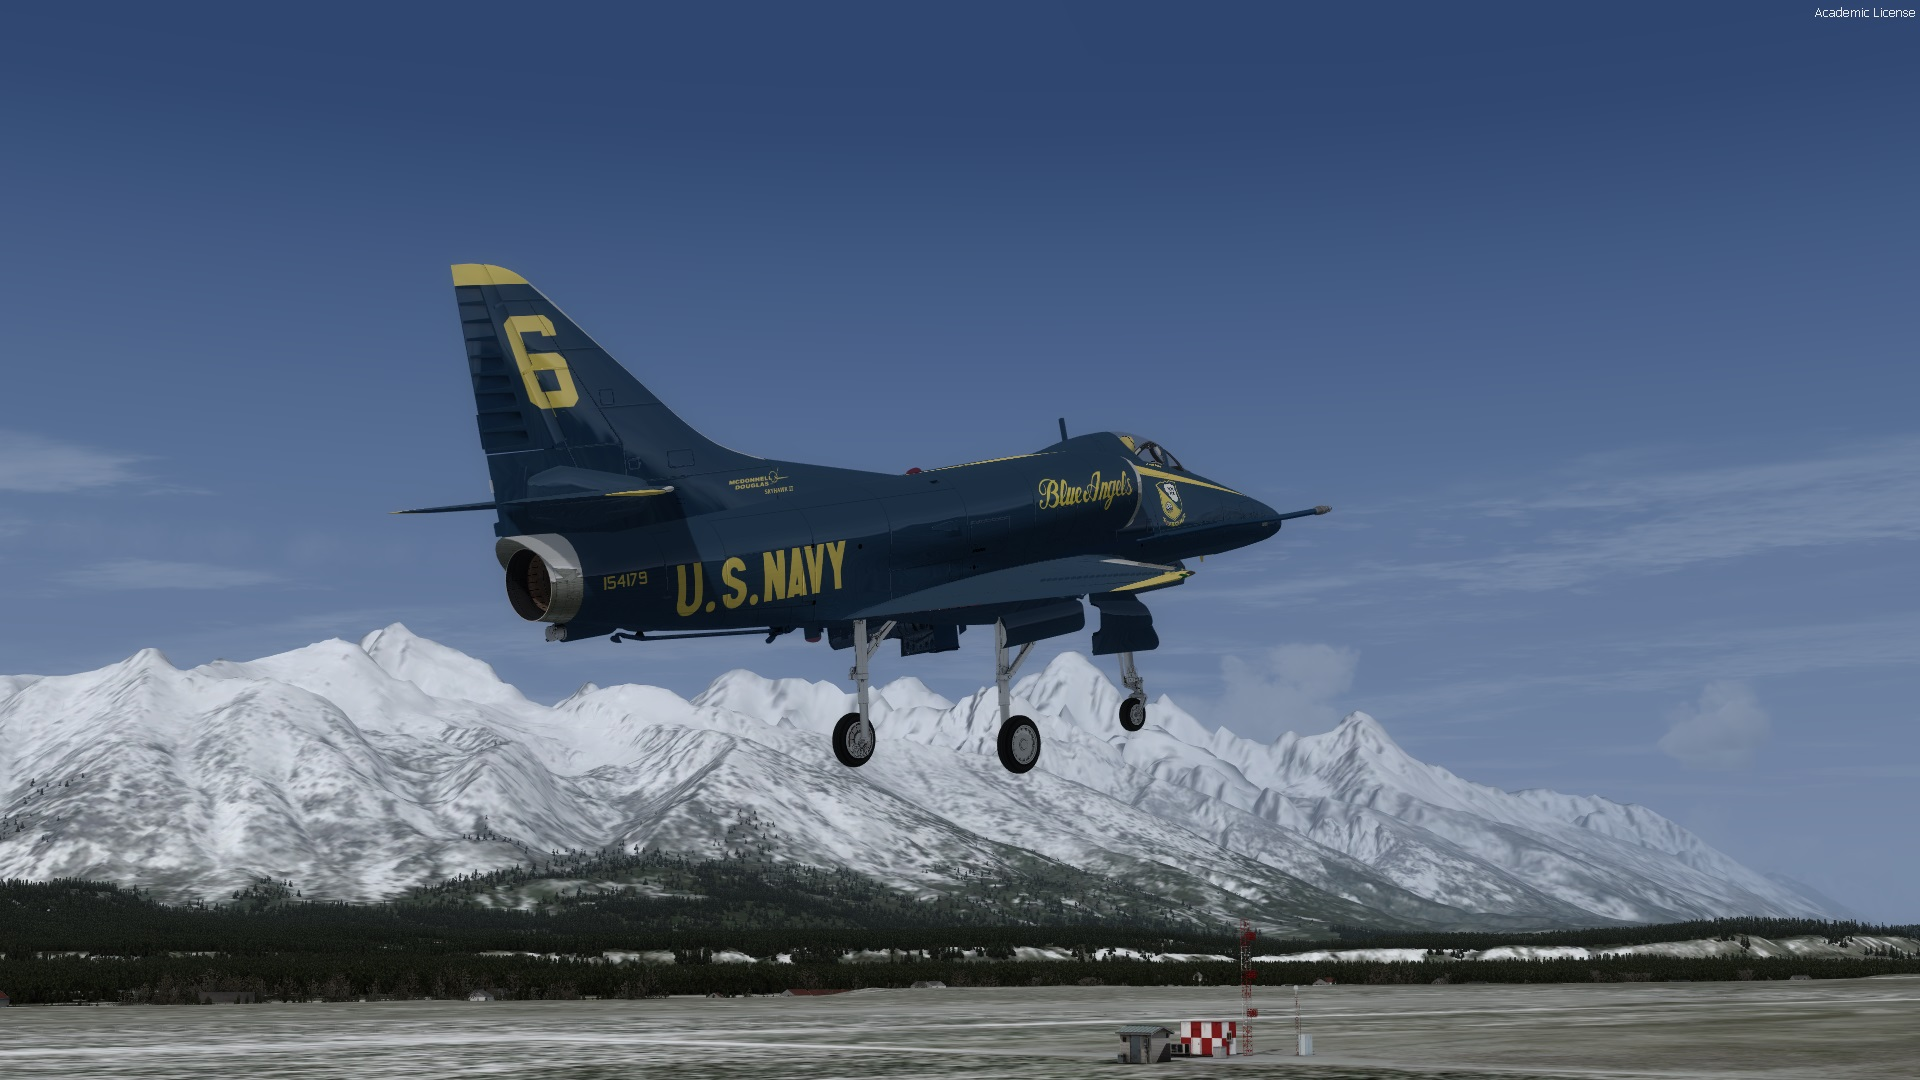 The most beautiful *military* jet - please post! - Community